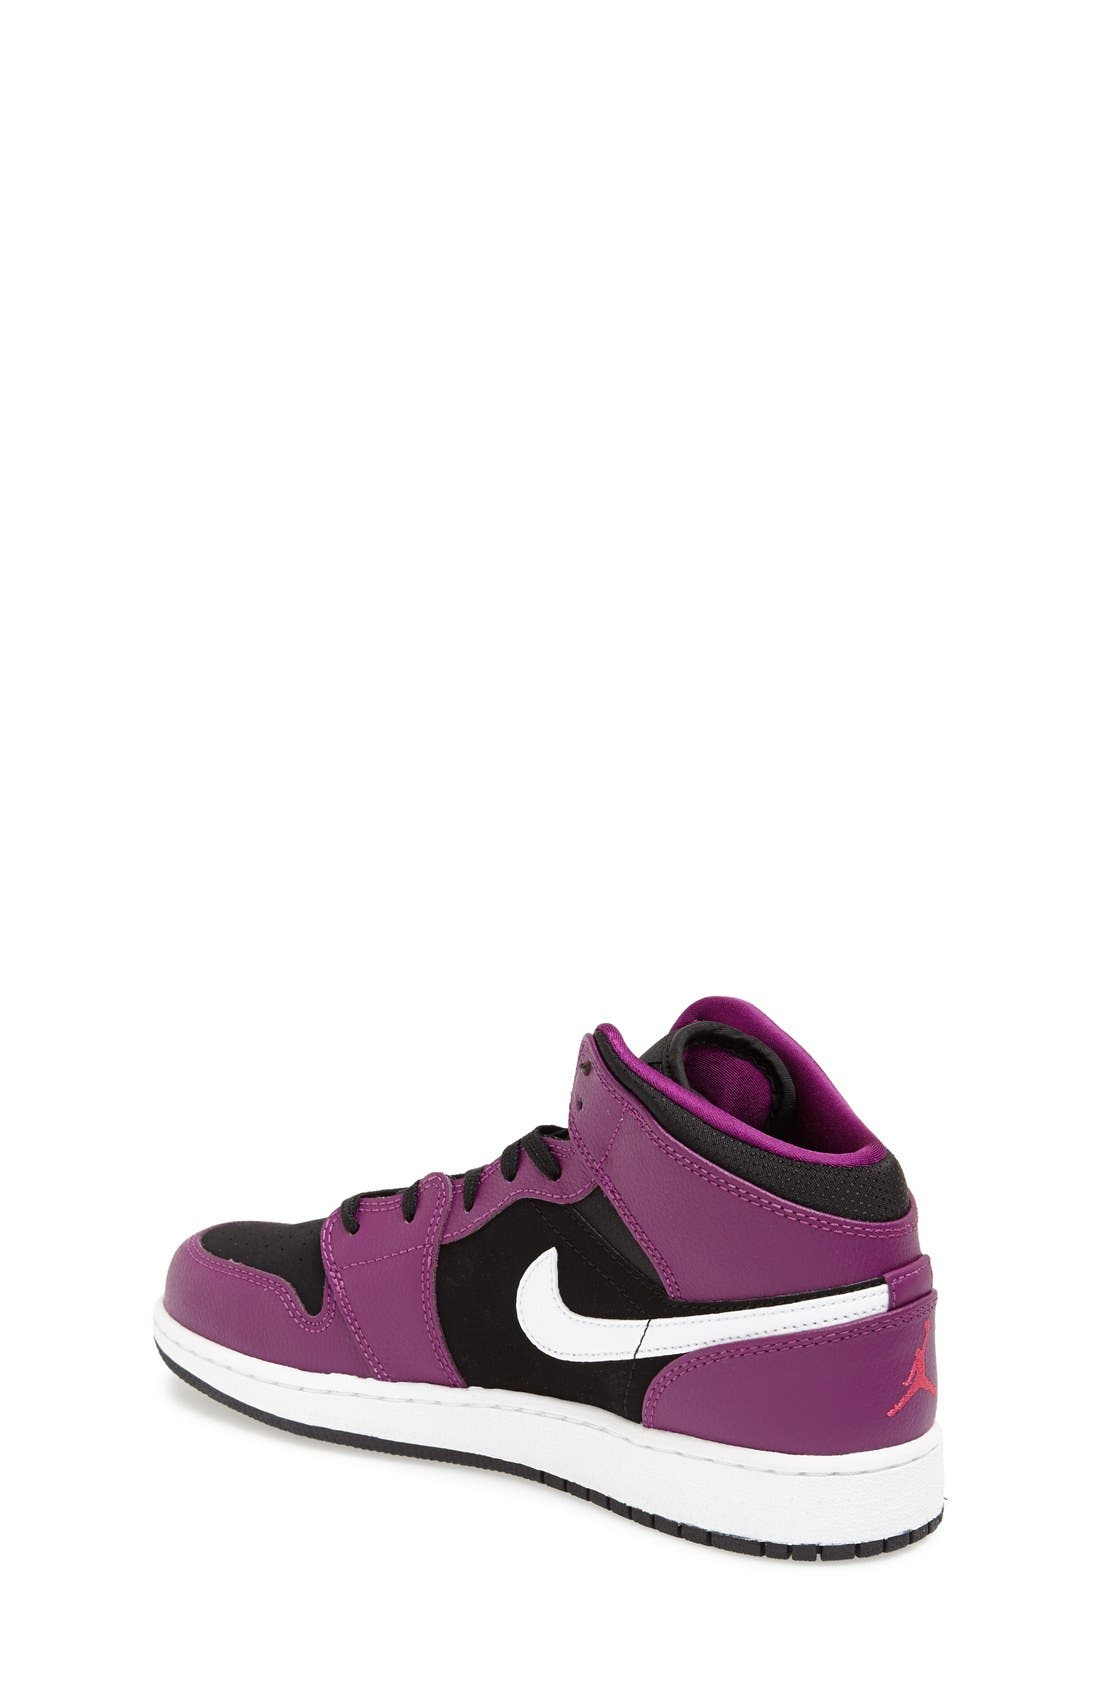 Nike 'Air Jordan 1 Mid' Sneaker,                             Alternate thumbnail 10, color,